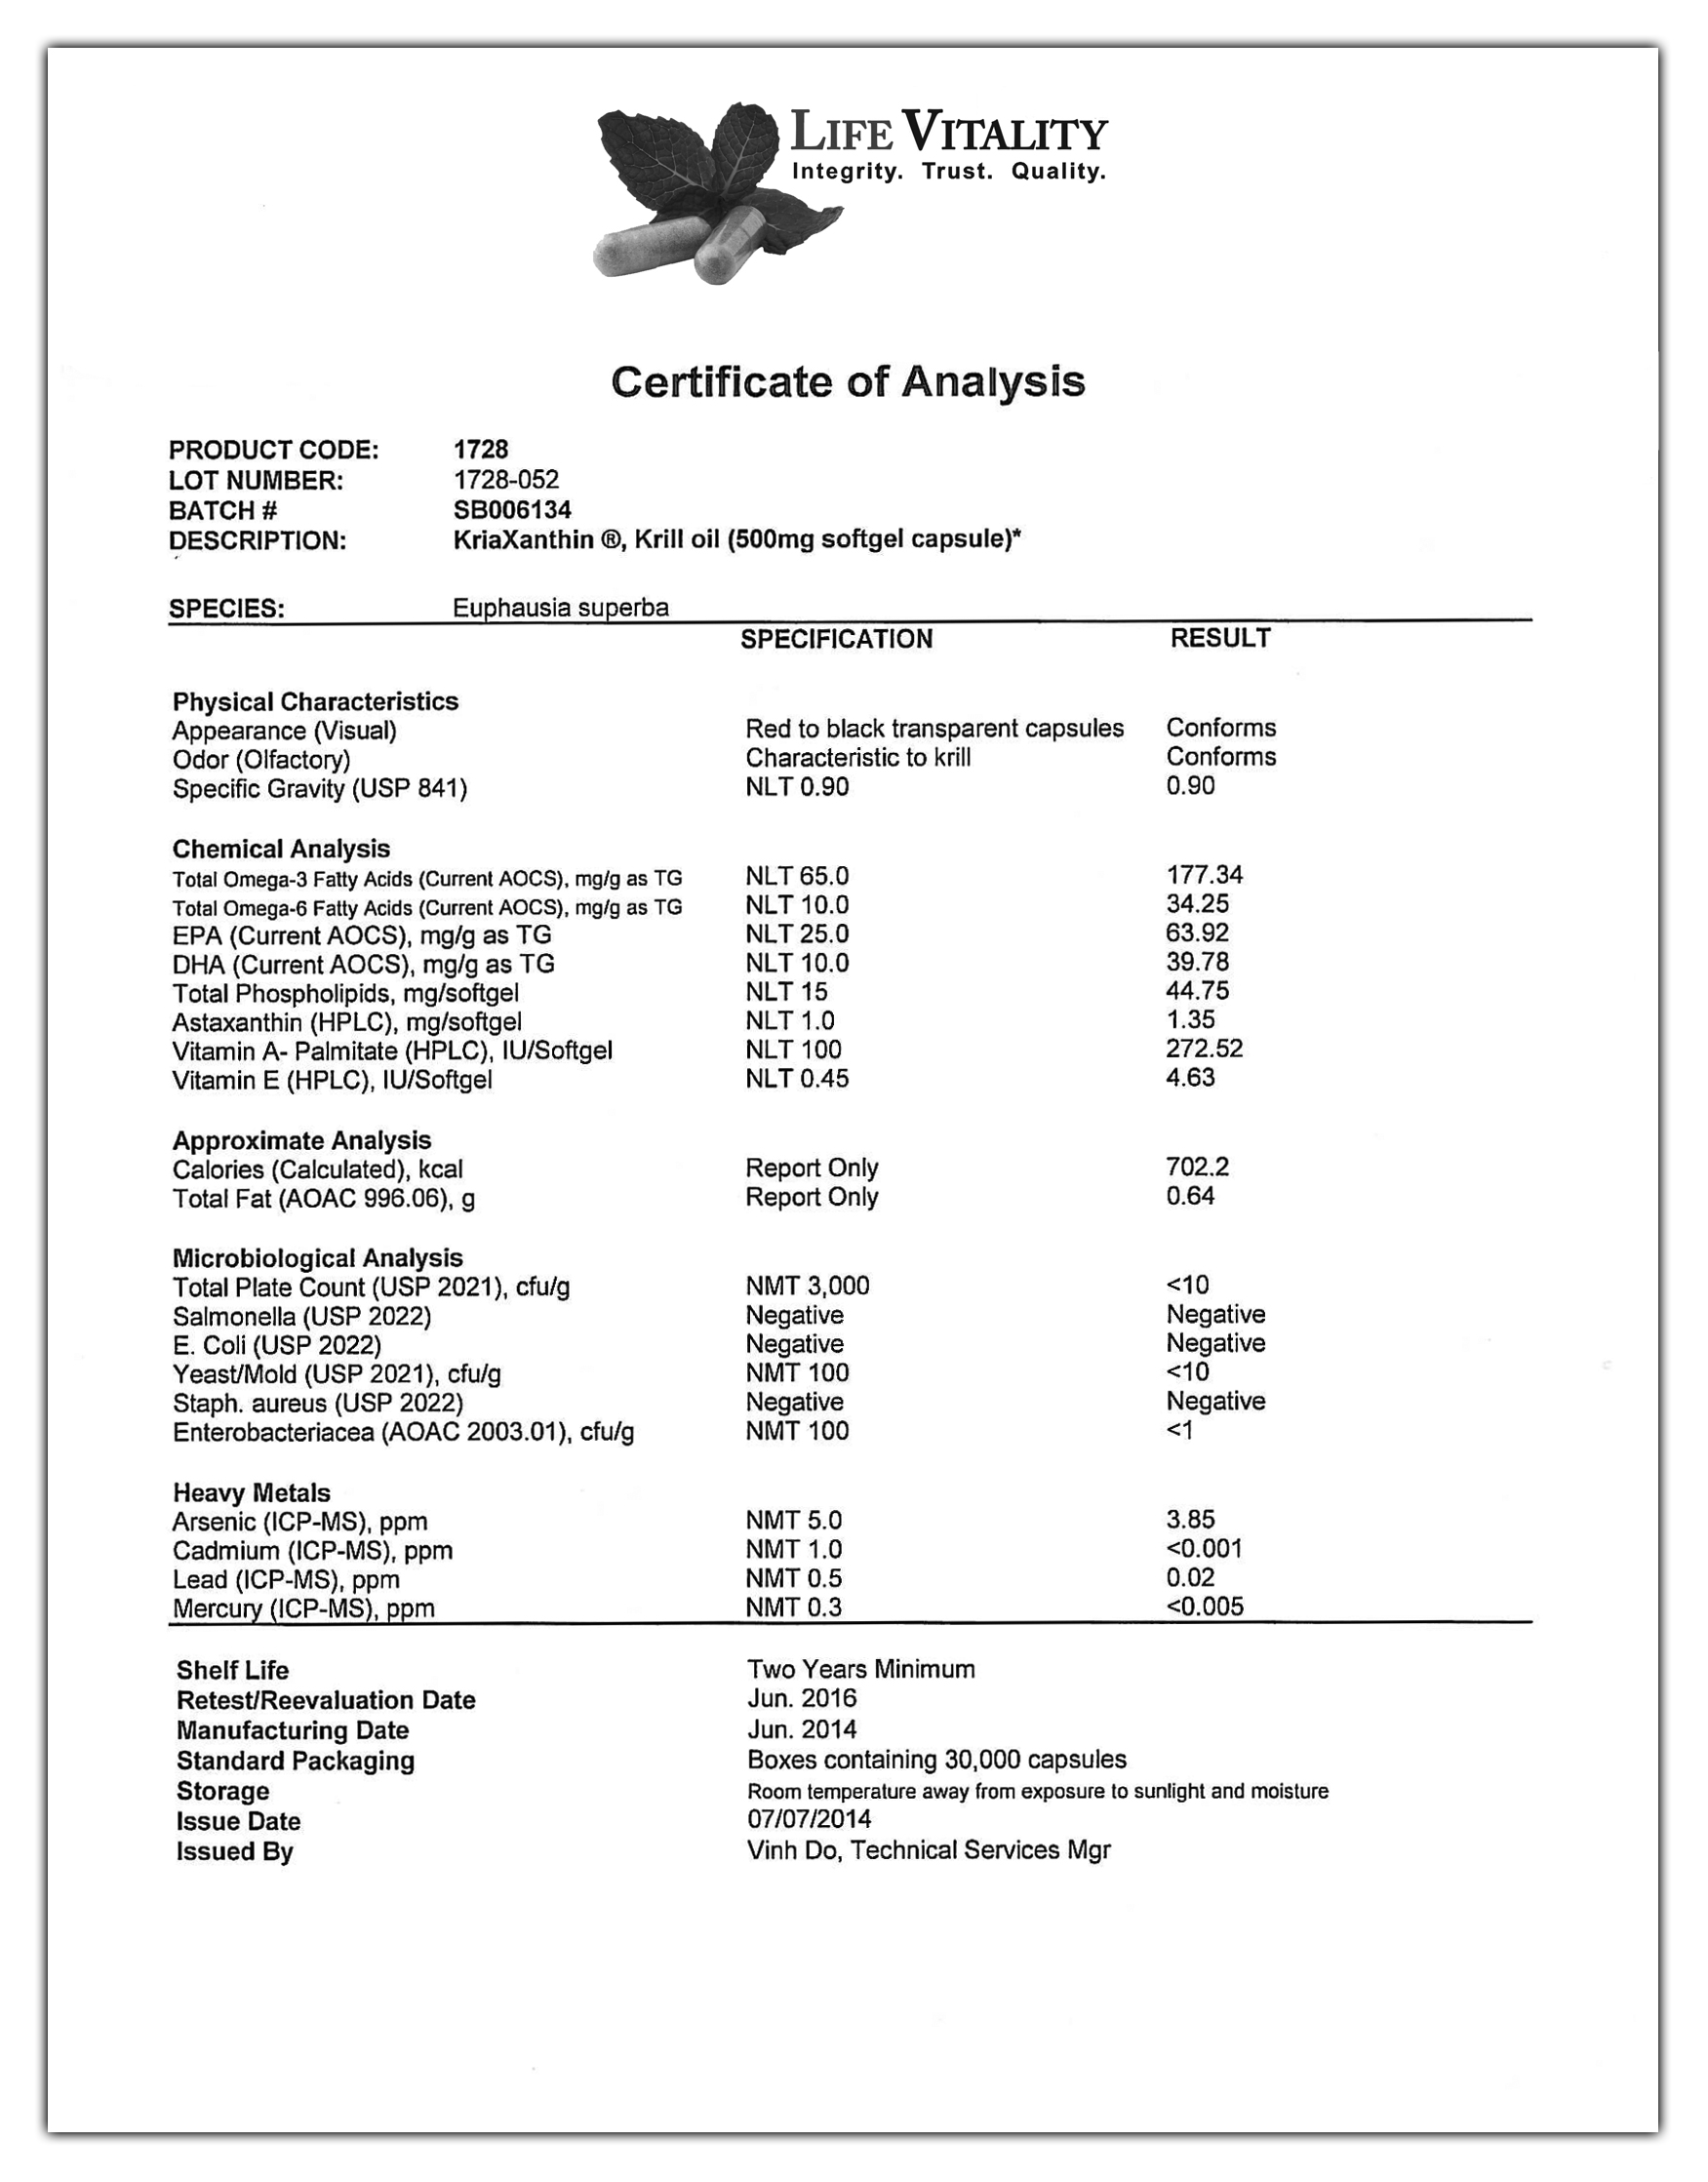 Certificate of Analysis Meaning